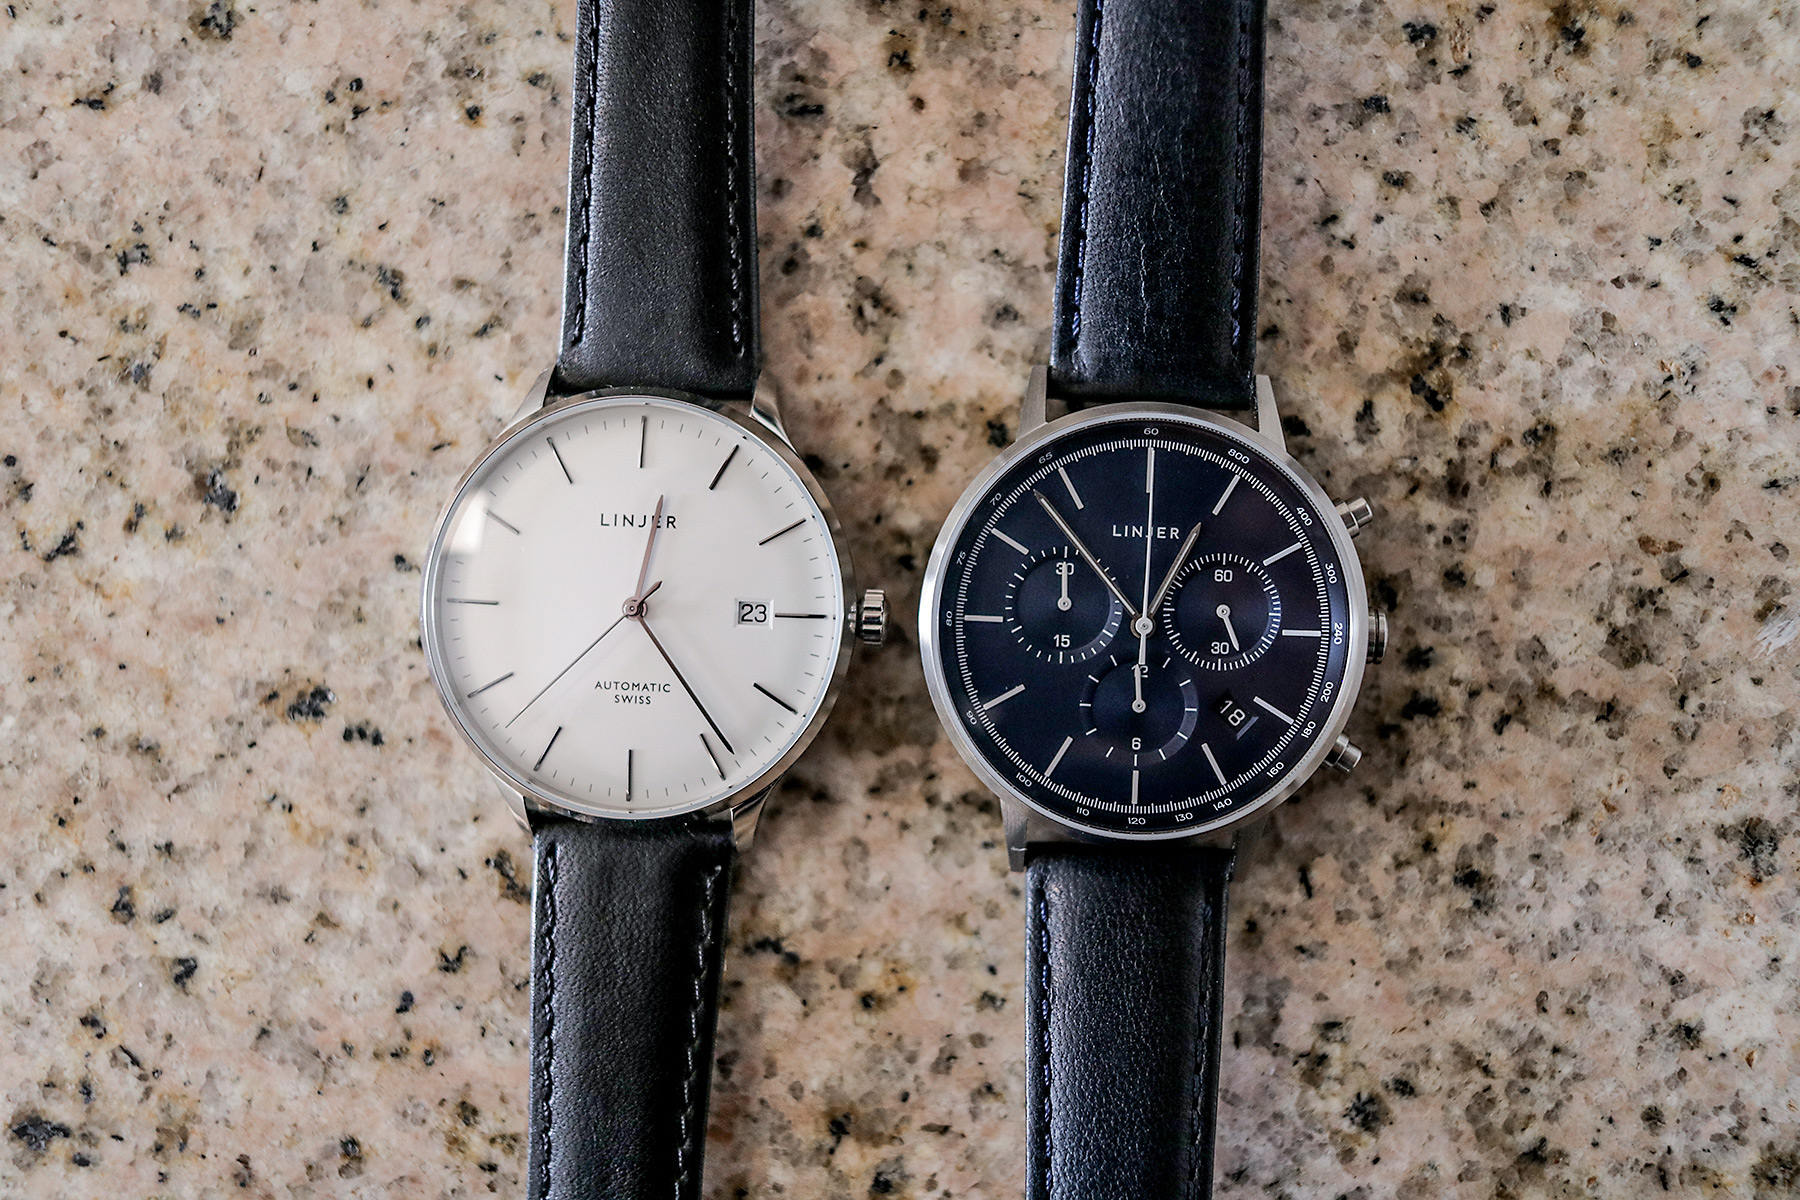 Automatic vs quartz watch